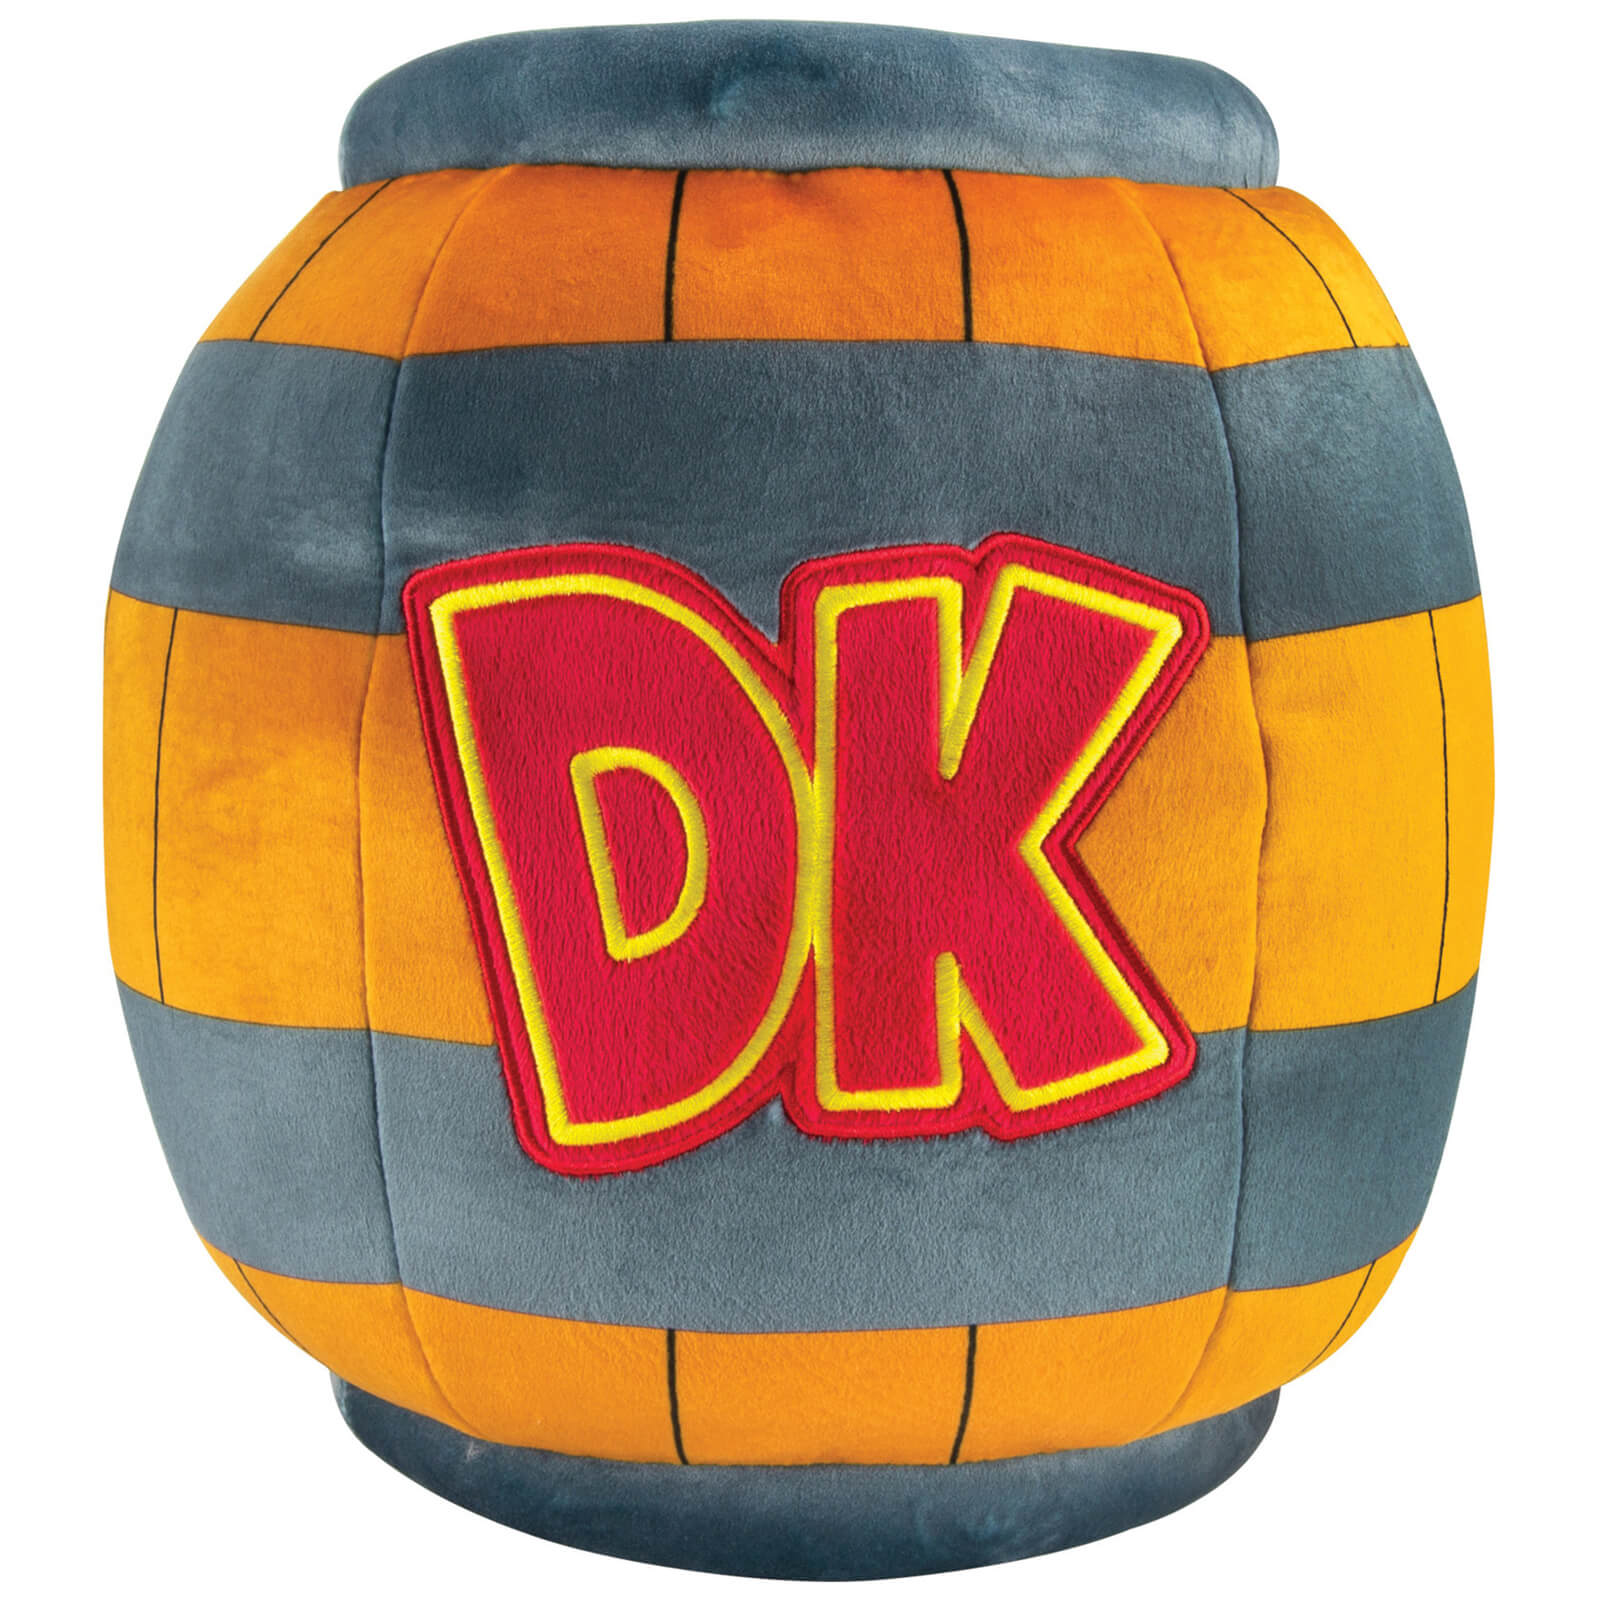 Image of Mario Kart Mega Donkey Kong Barrel Plush Toy